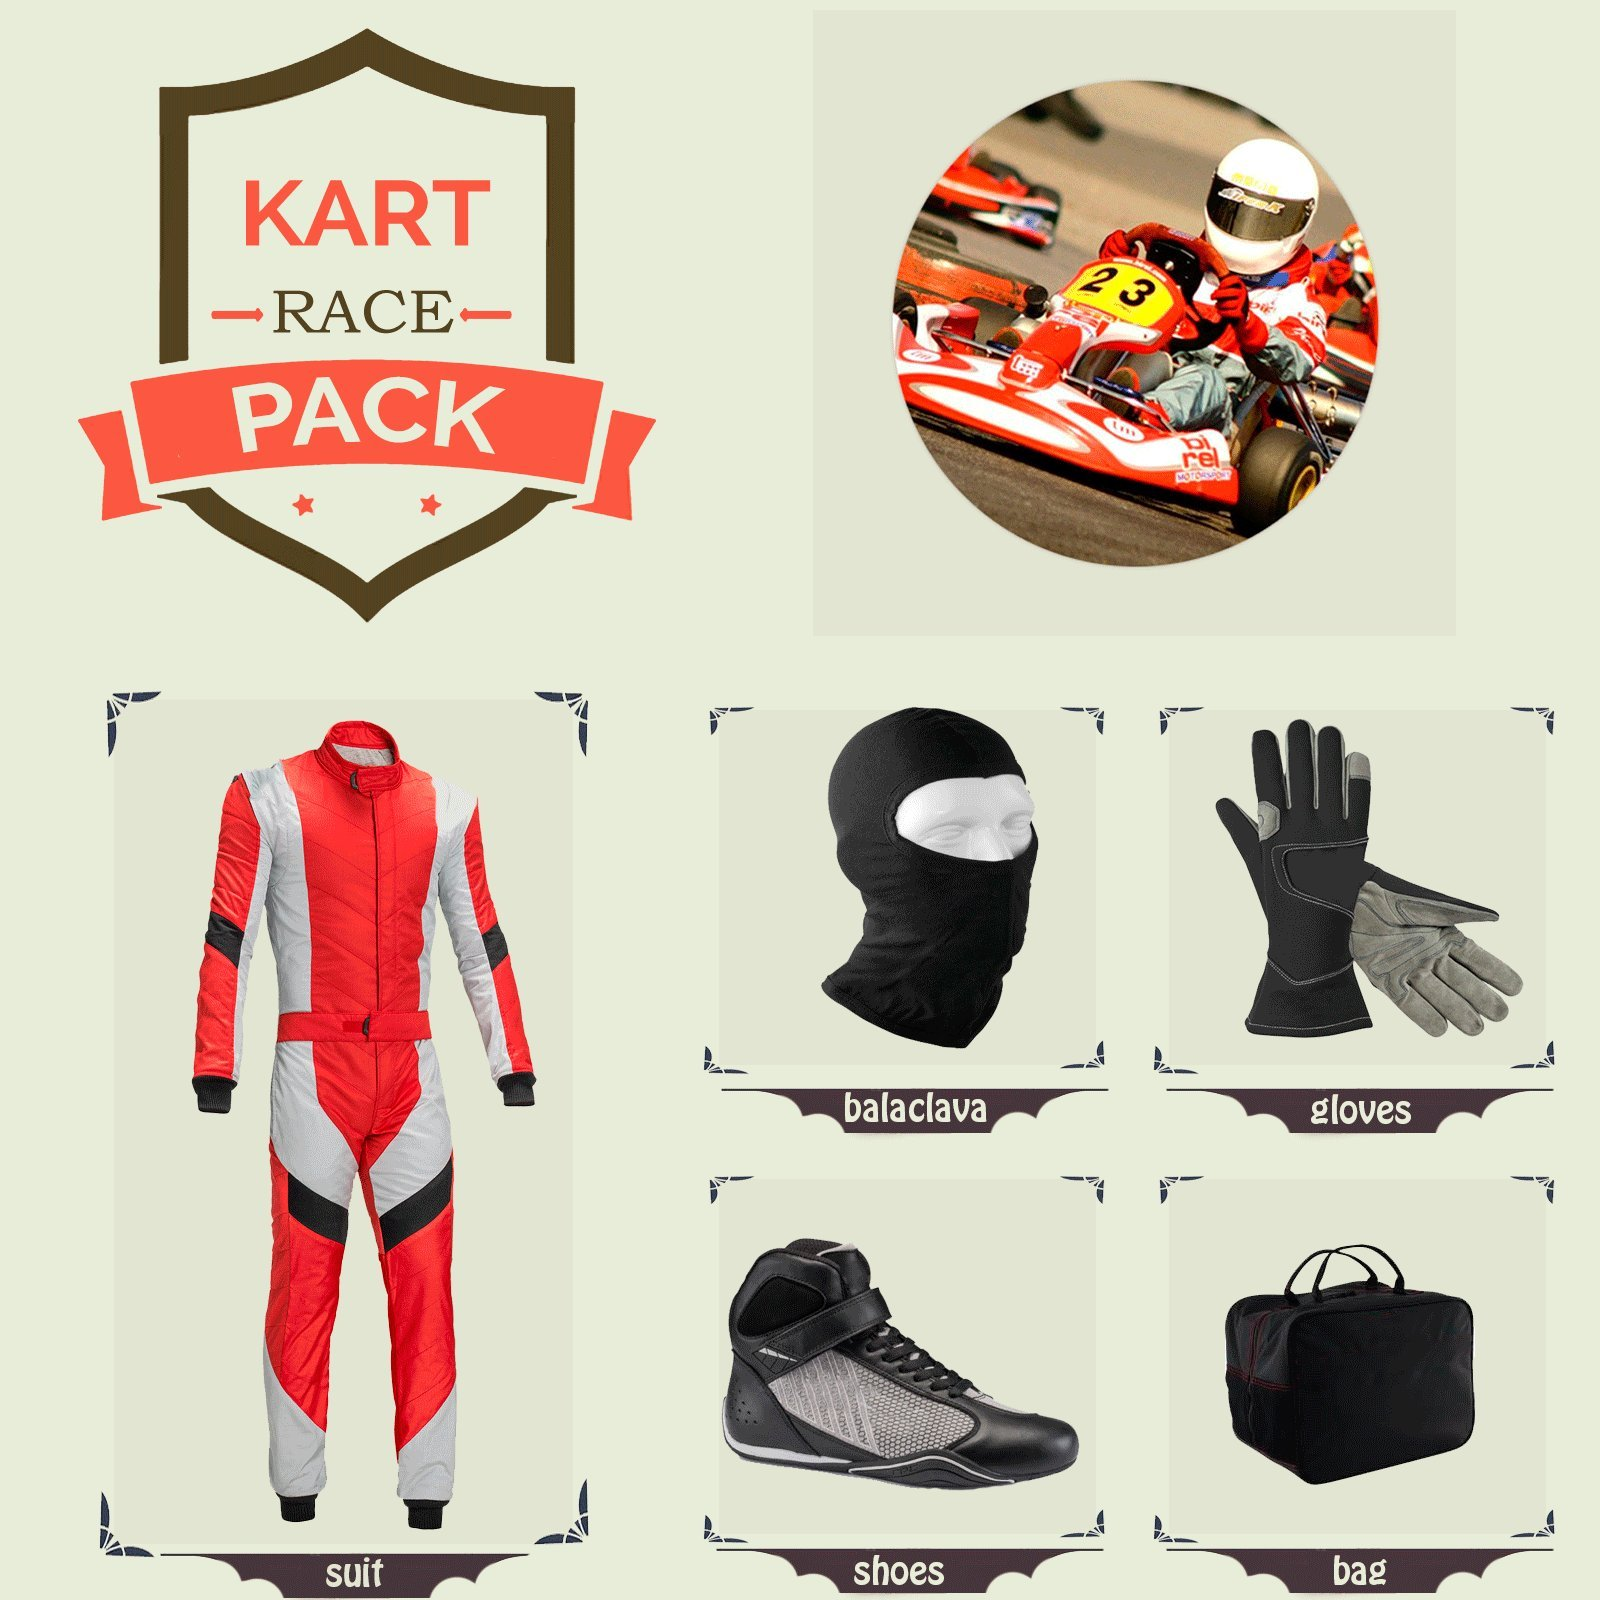 Sports Blue Go Kart Racing Suit Suit,Gloves,Balaclava and Shoes free bag - Red With White Black Style